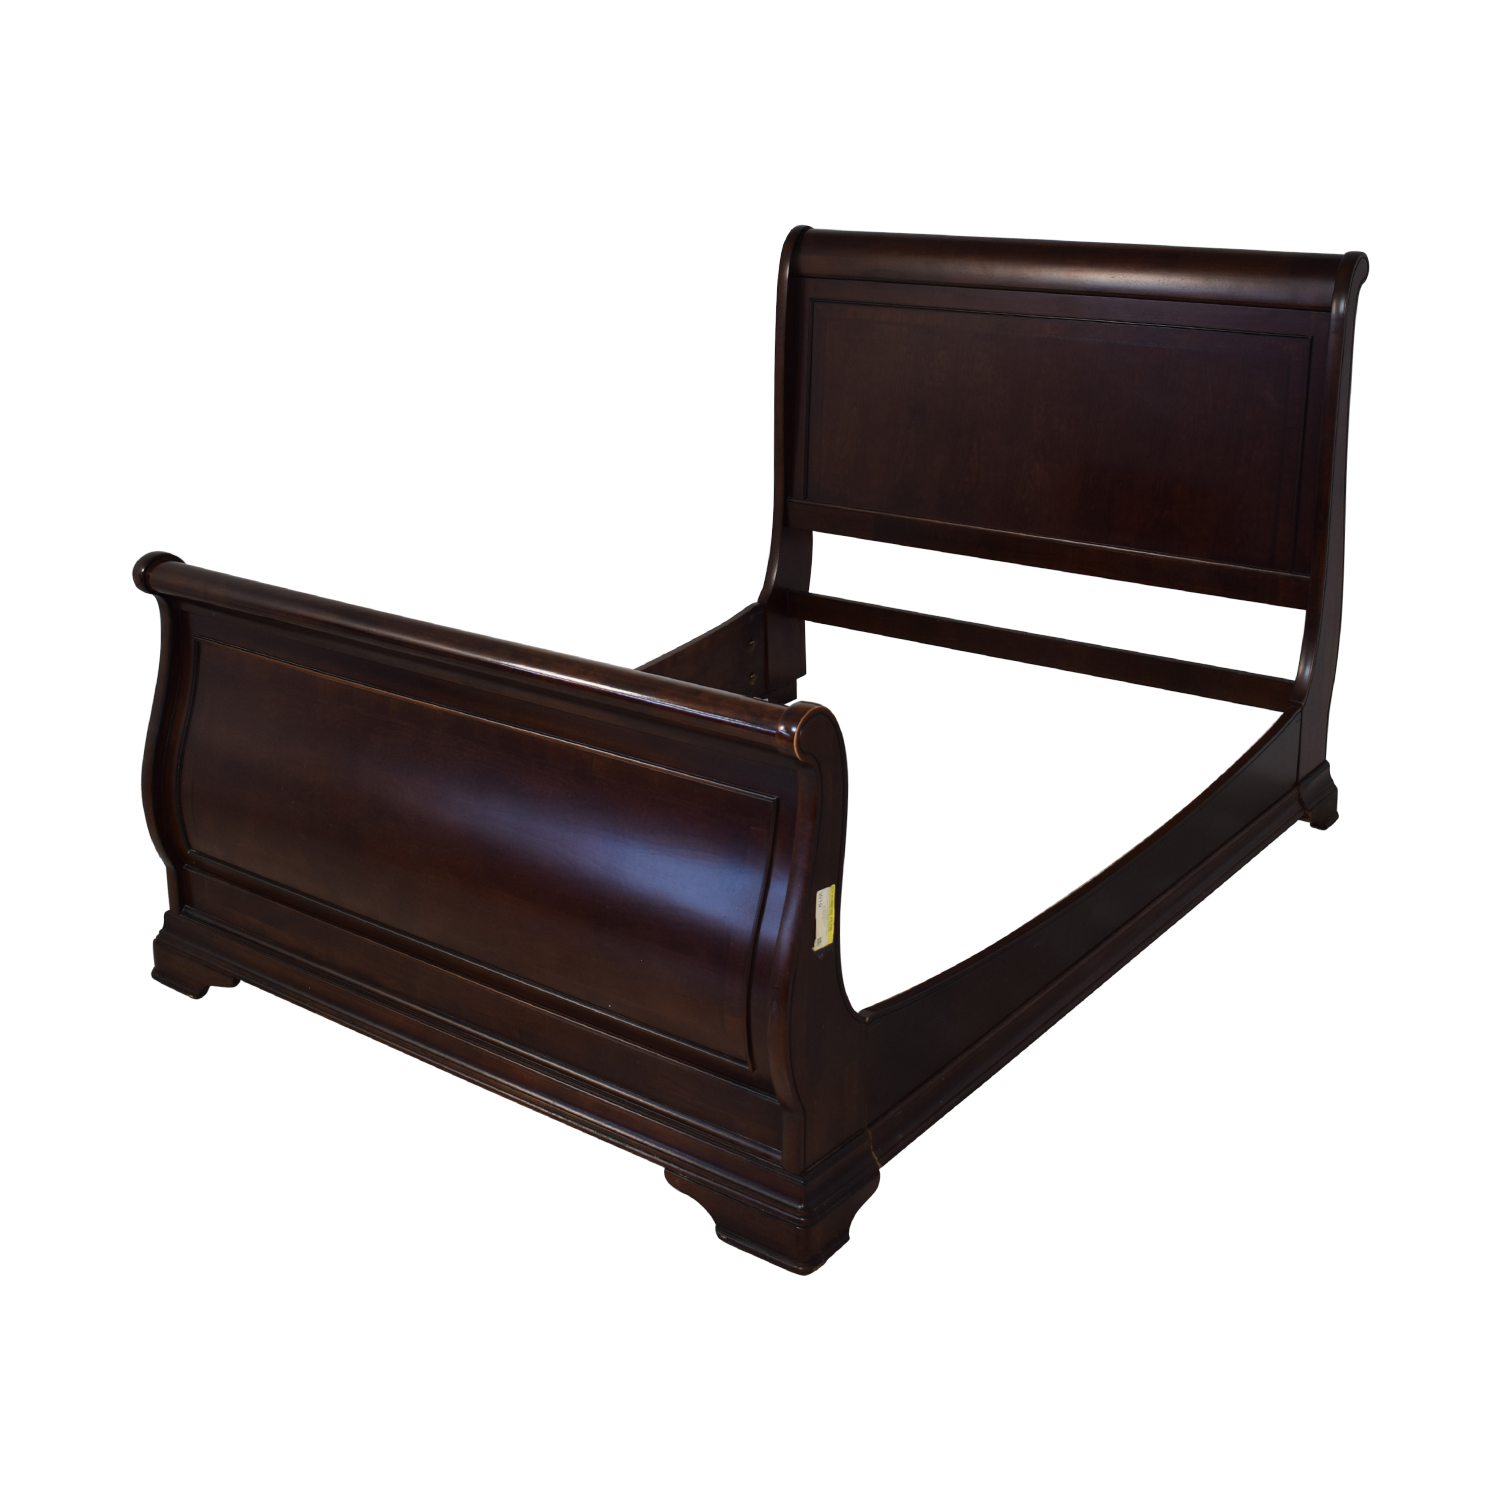 Havertys Havertys Orleans Queen Grand Sleigh Bed Frame